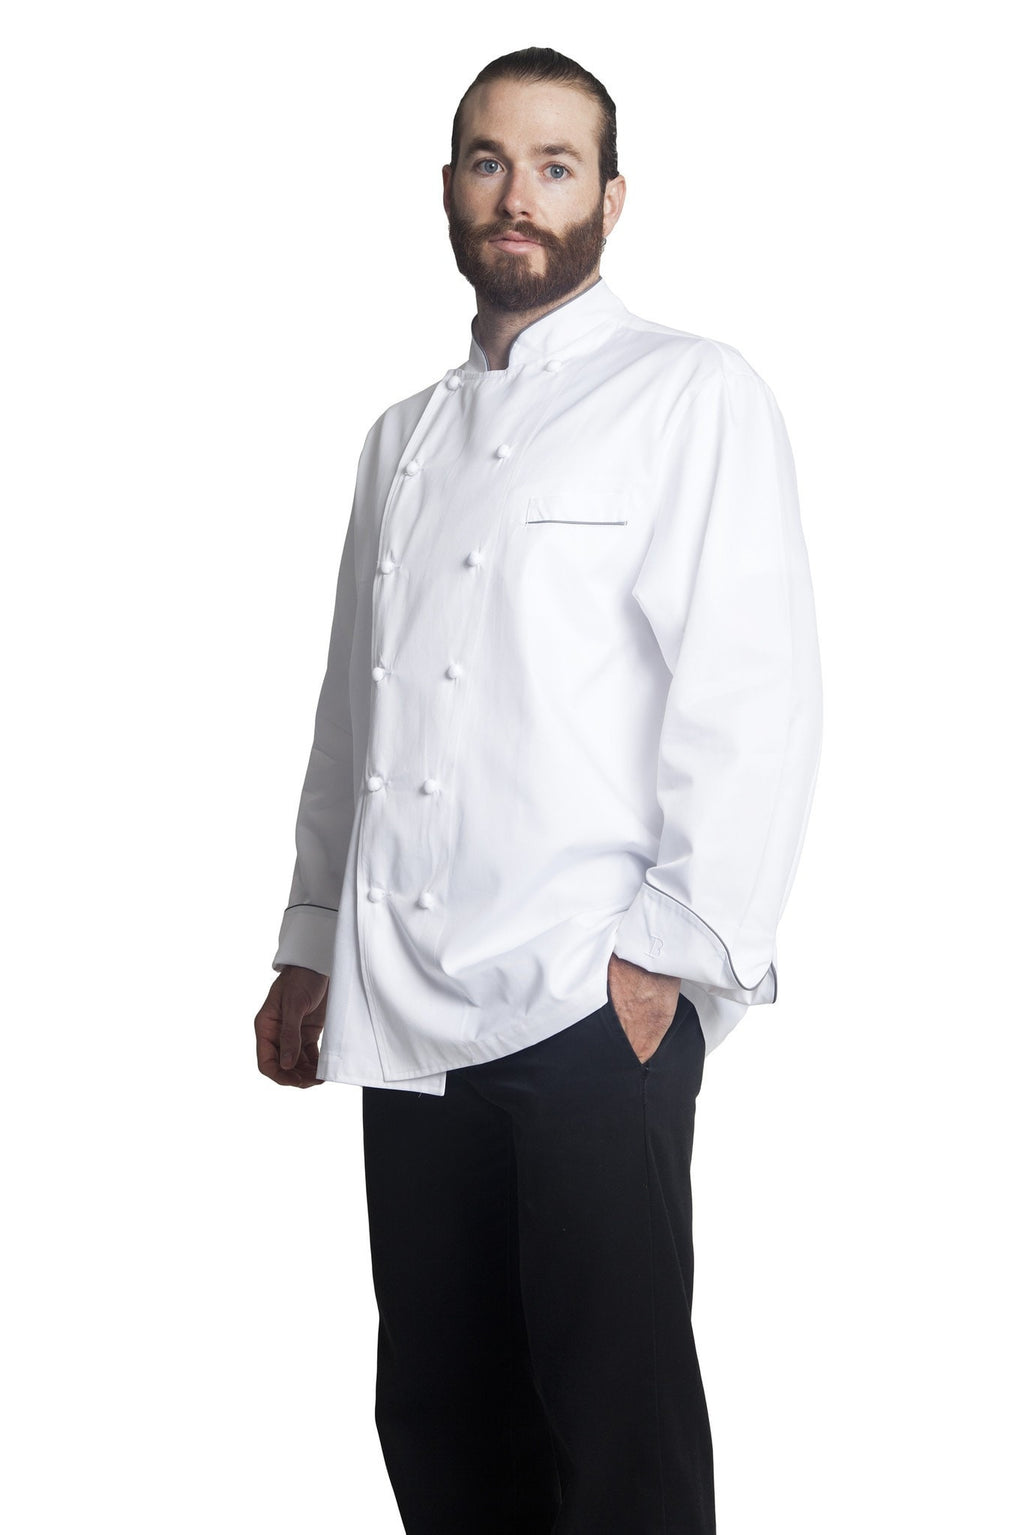 Bragard Perigord Chef Jacket Side